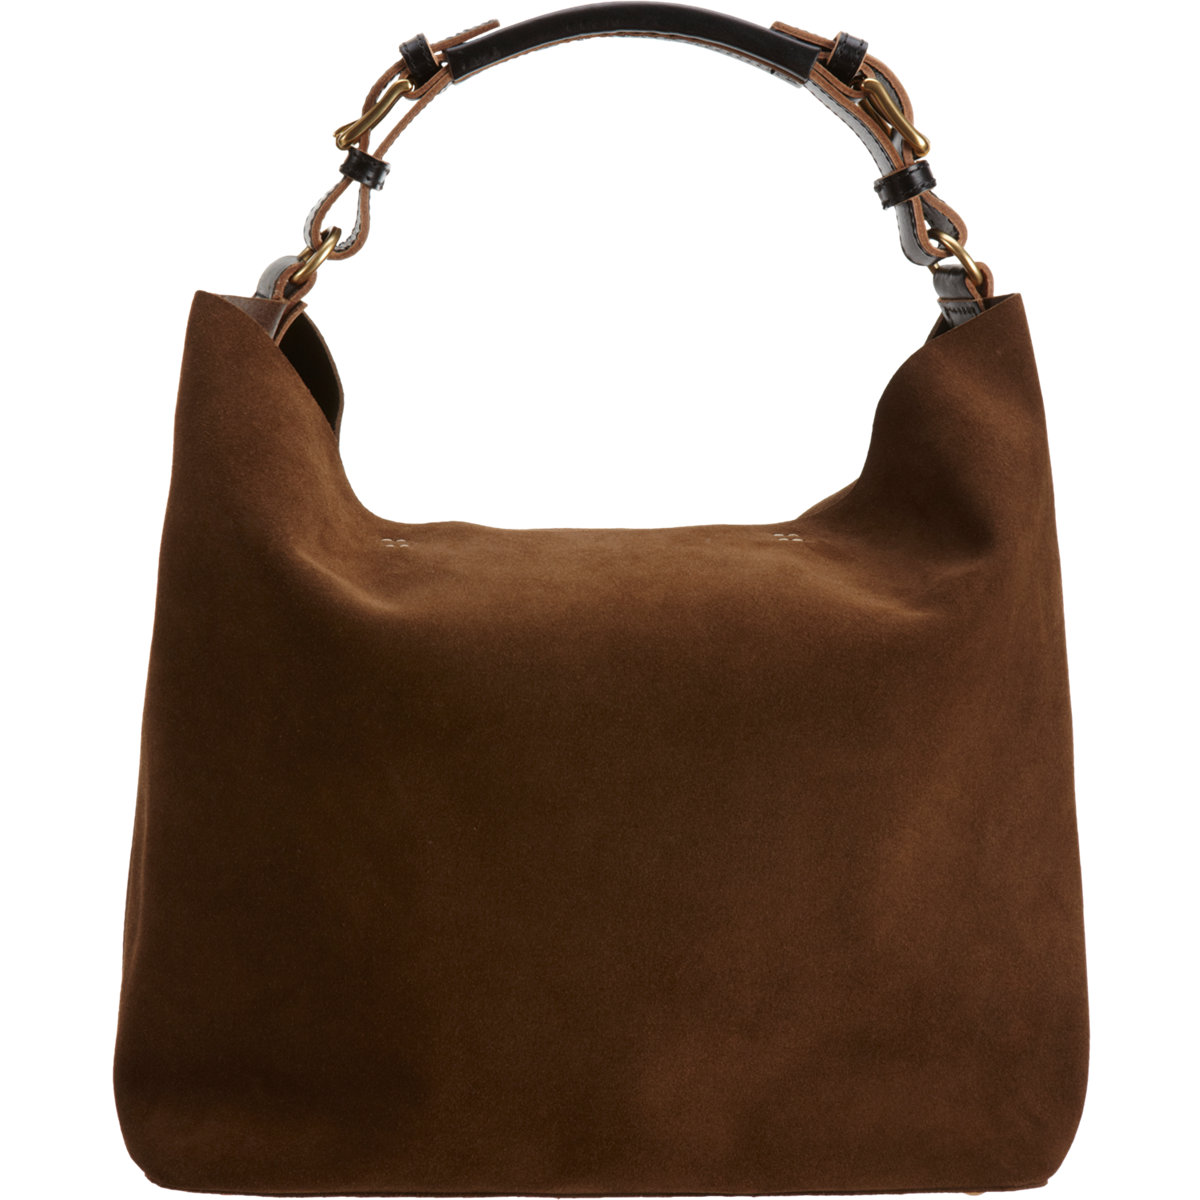 Marni Suede Hobo Bag in Brown | Lyst